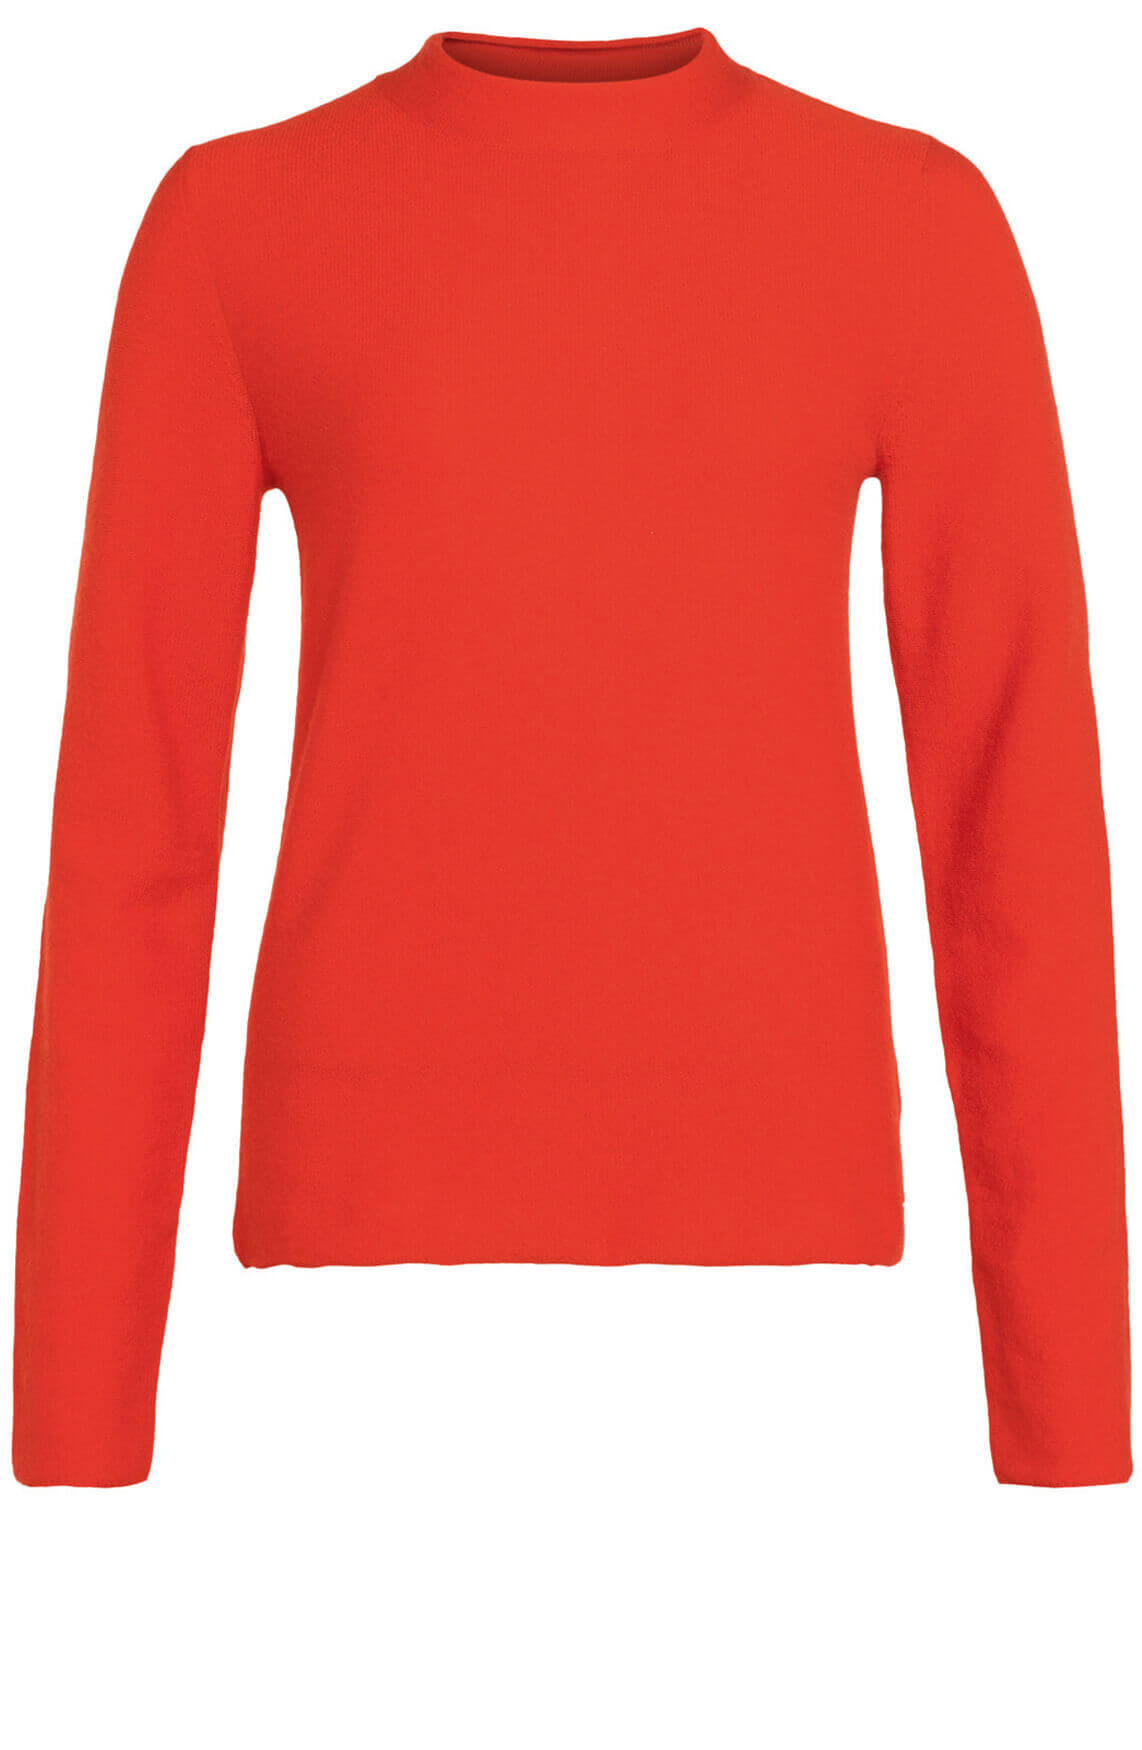 Anna Dames Cashmere pullover met col Rood